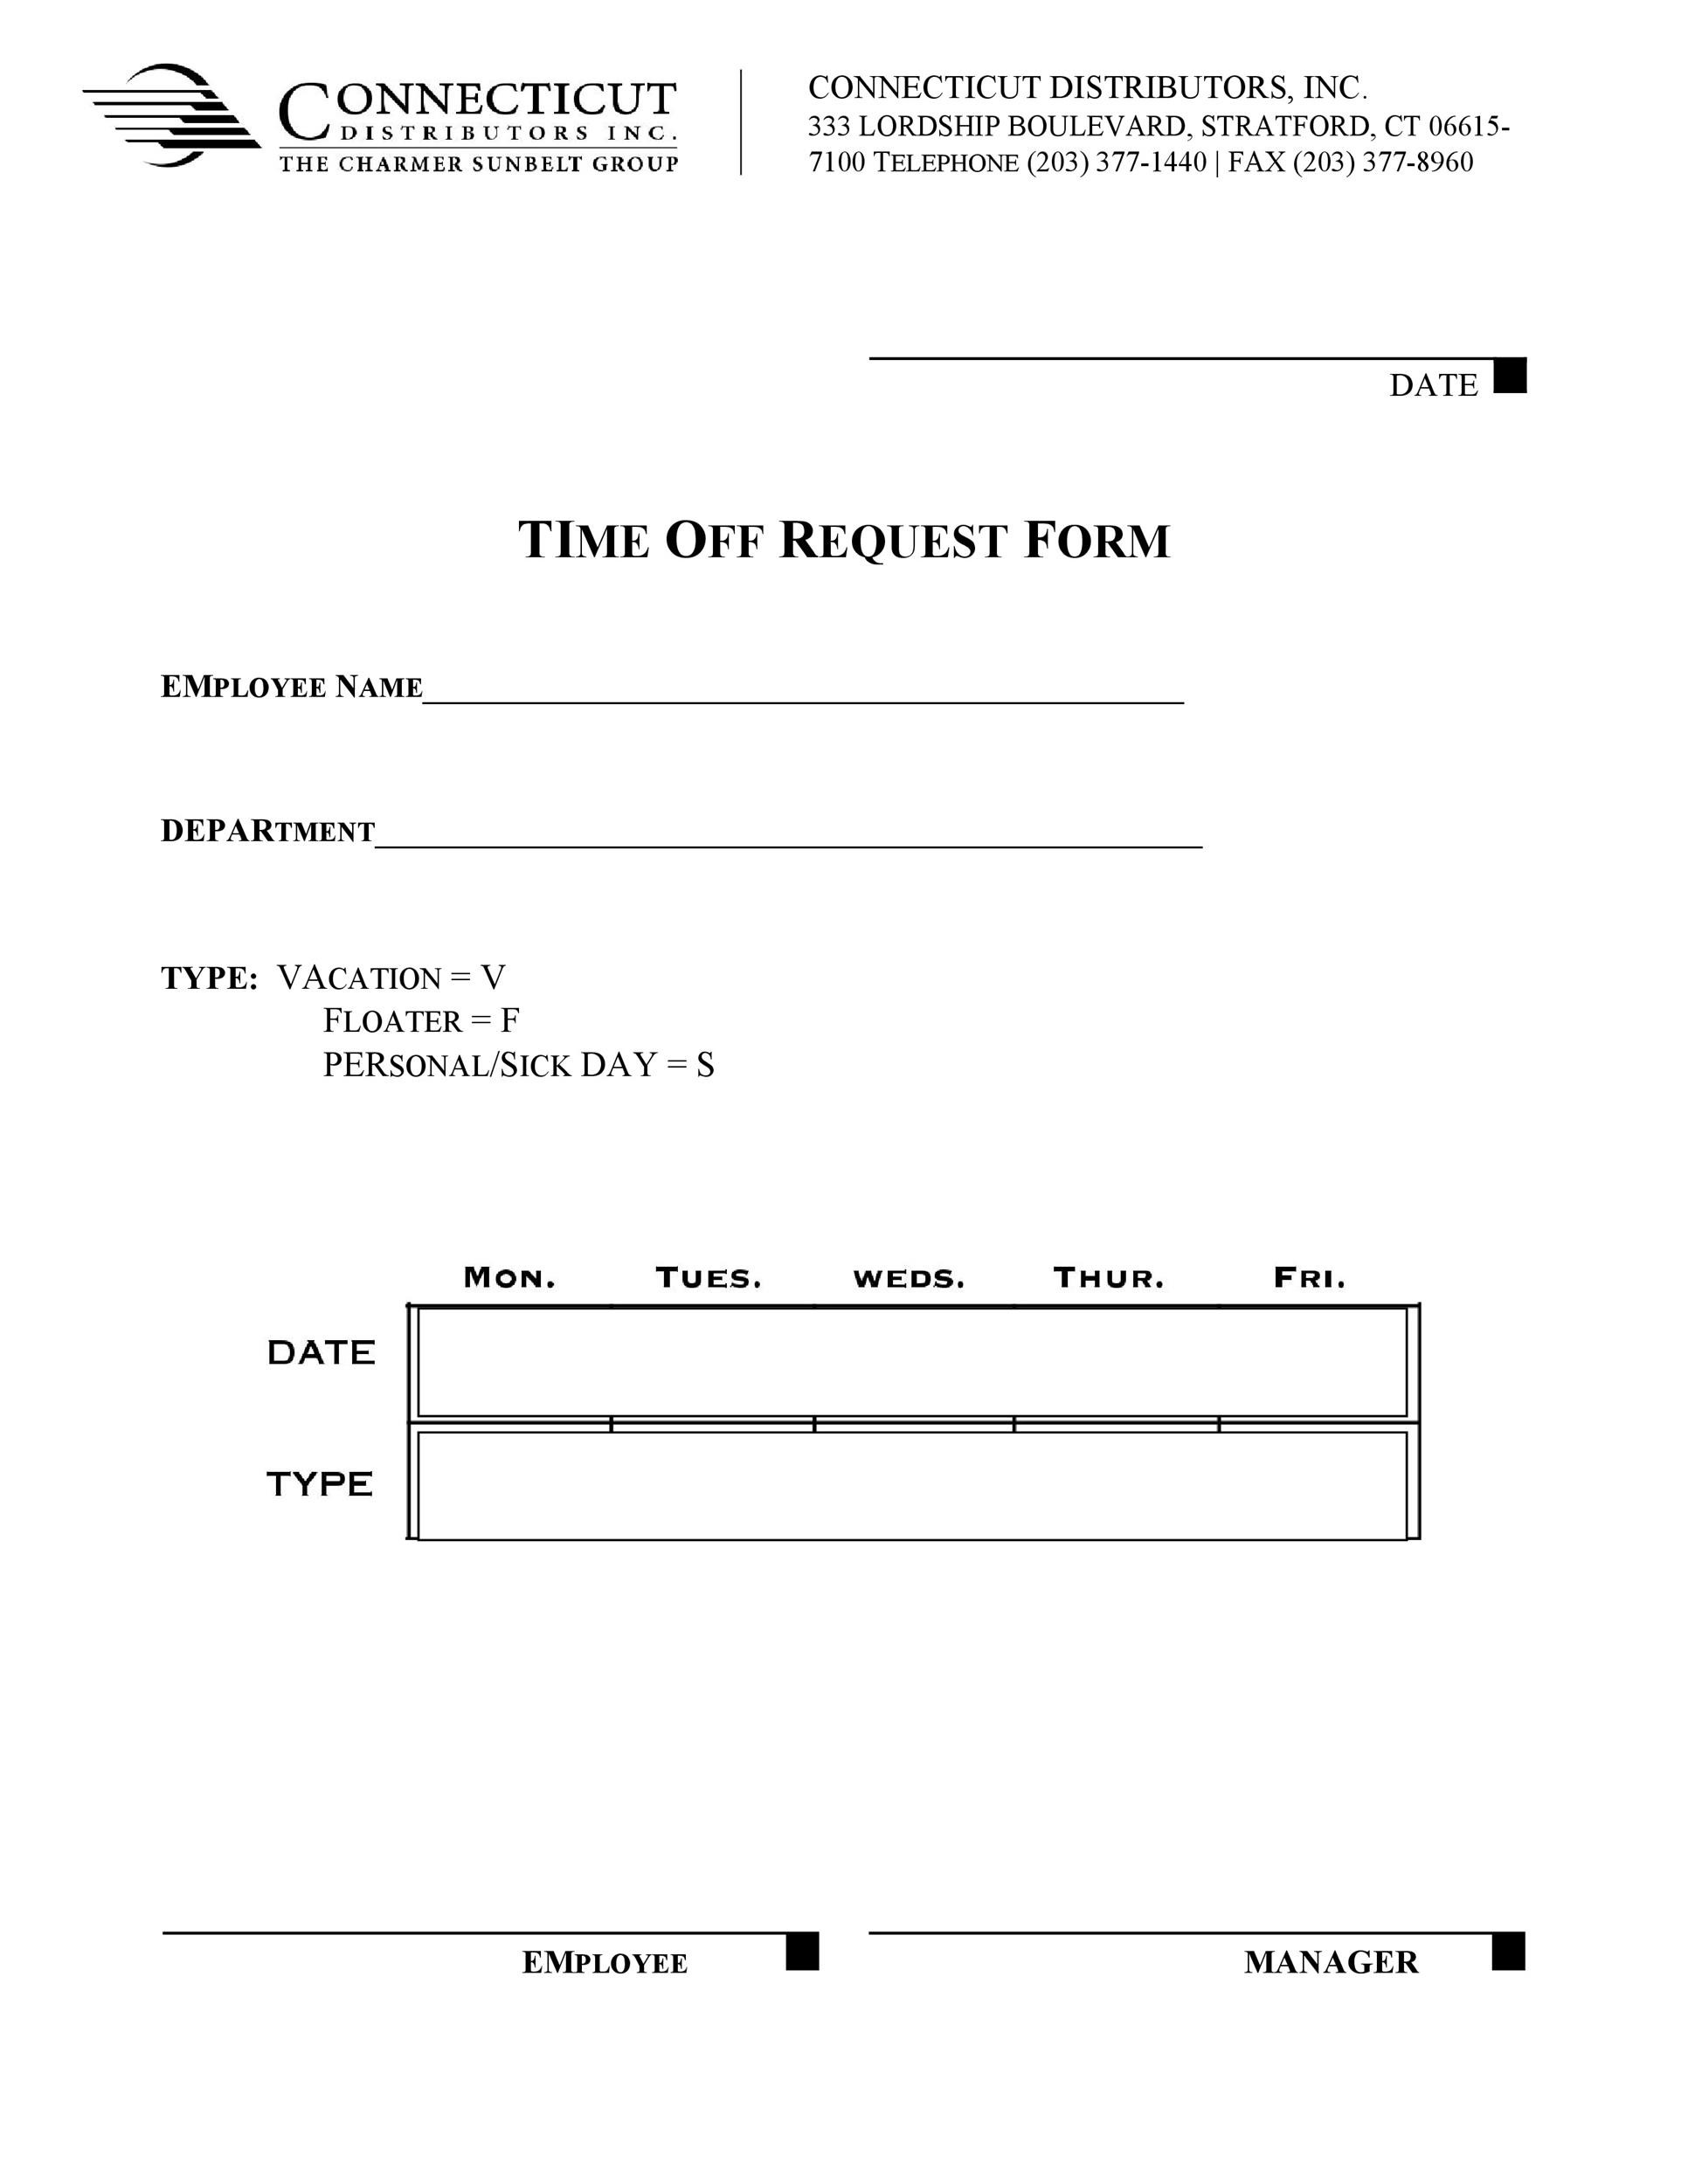 Printable Time Off Request Form Template 25